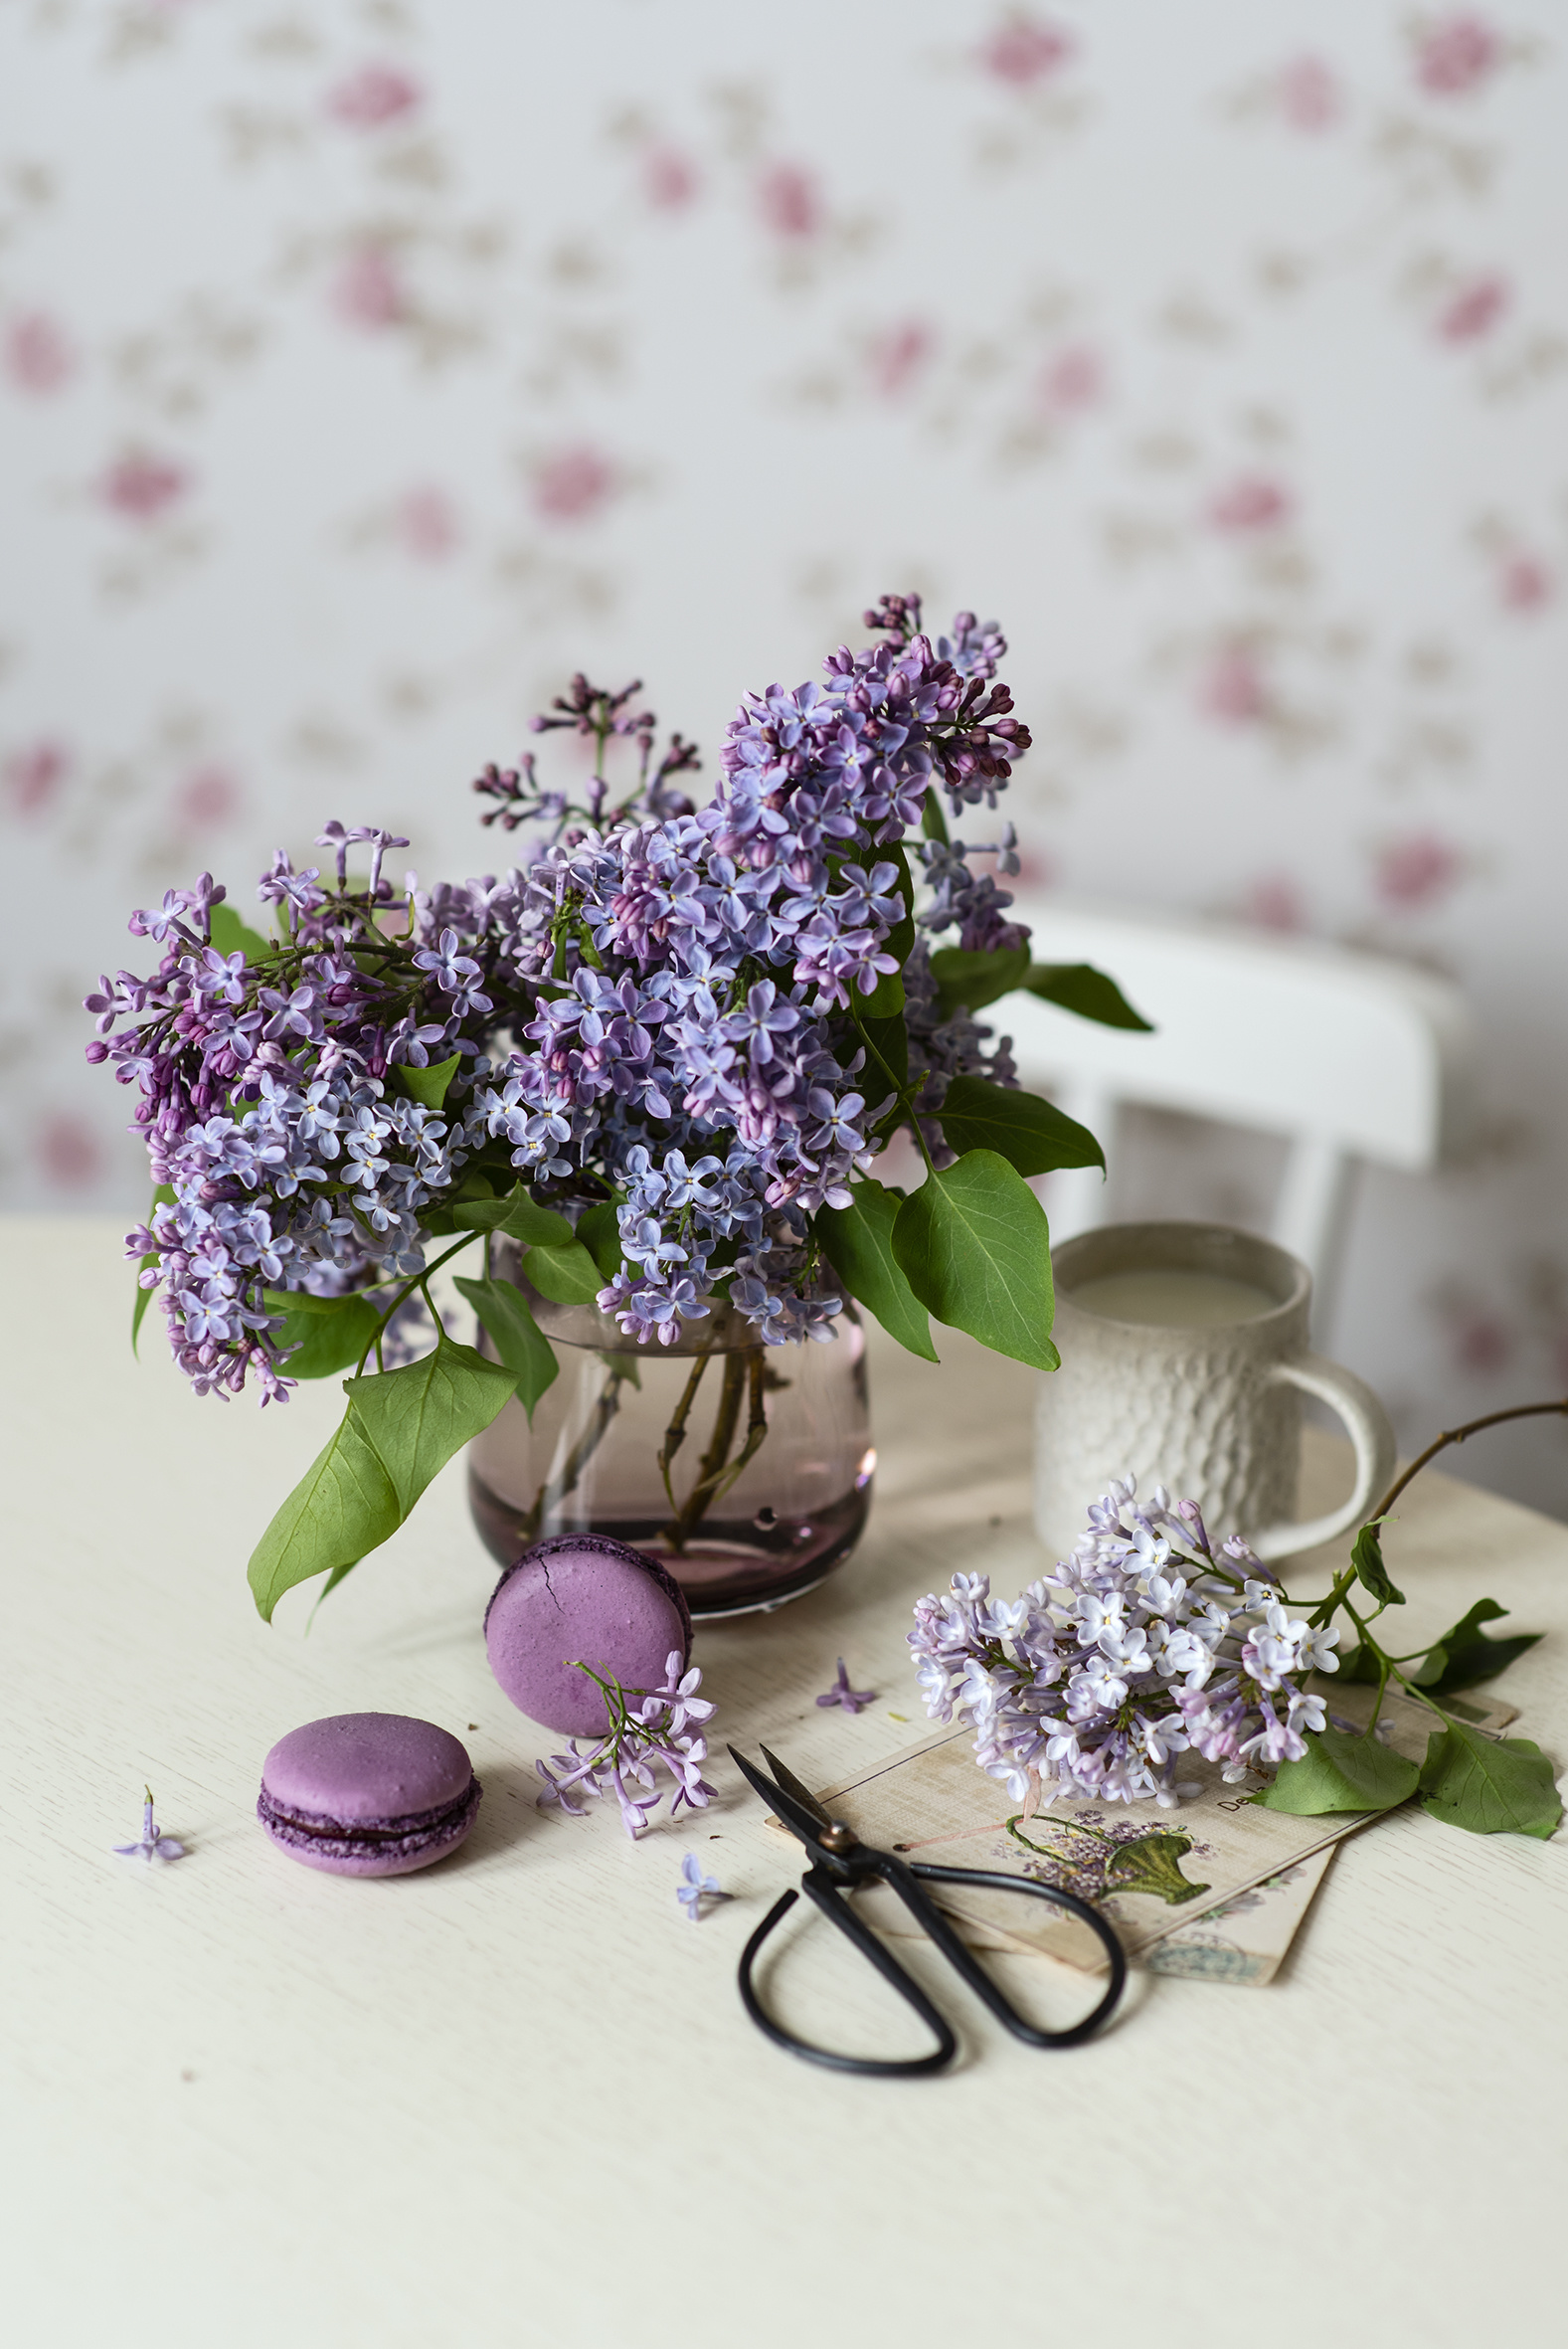 Photos french macarons Lilac flower Cup Vase Food Branches Still-life  for Mobile phone Macaron Flowers Syringa